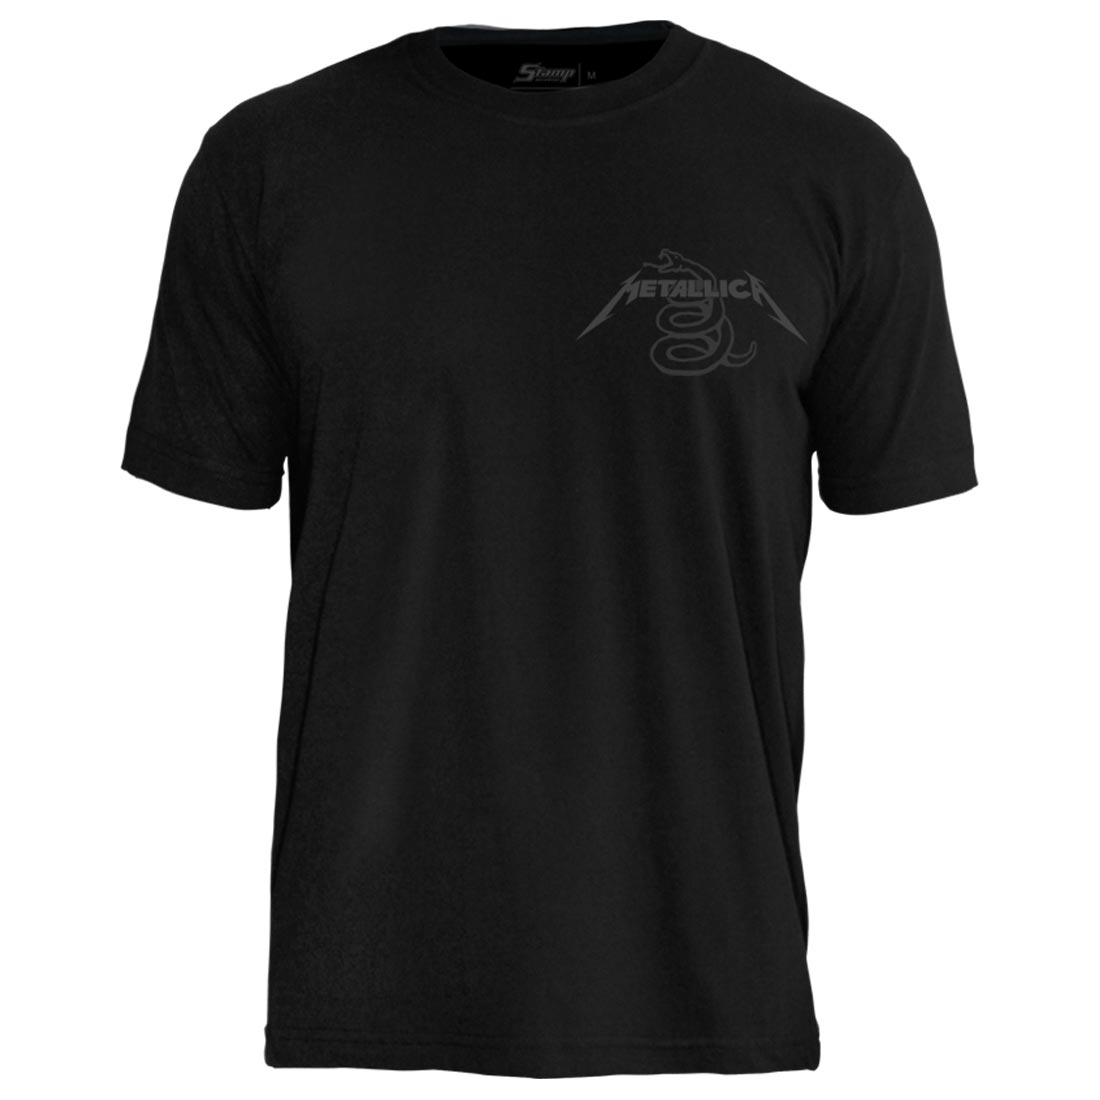 Camiseta PC Metallica Black Album